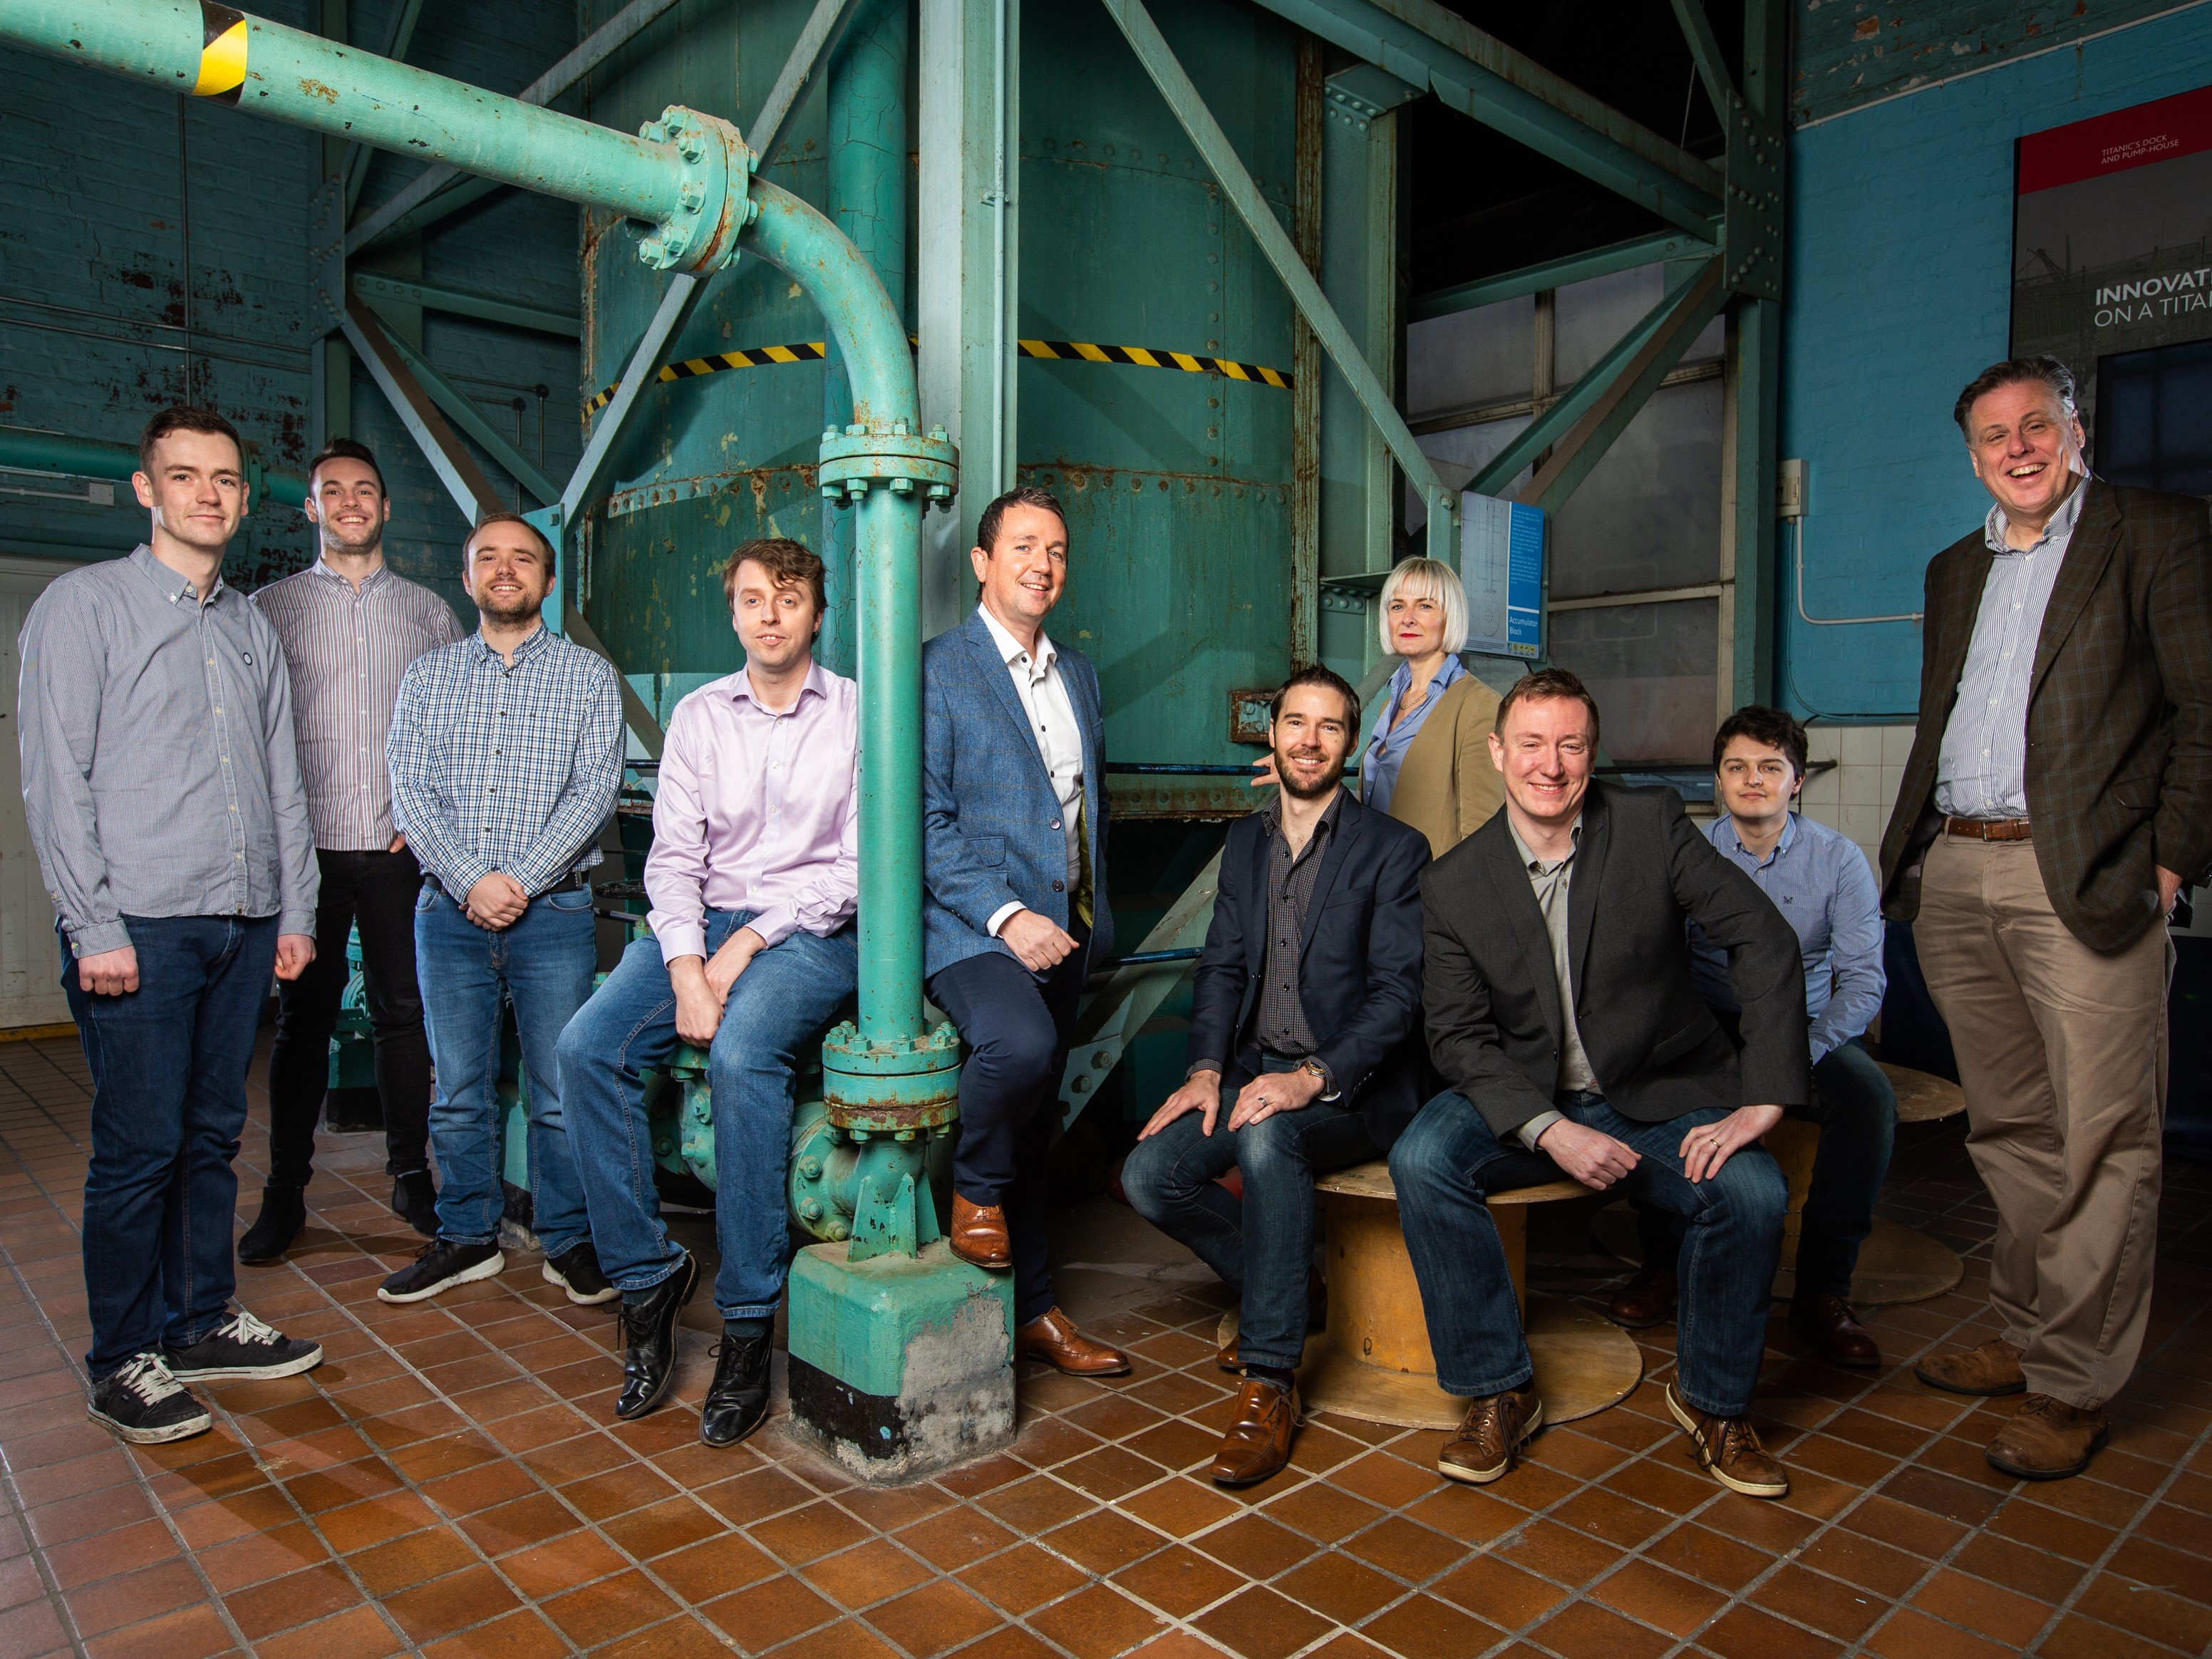 Ten people sitting and standing among green pipes.